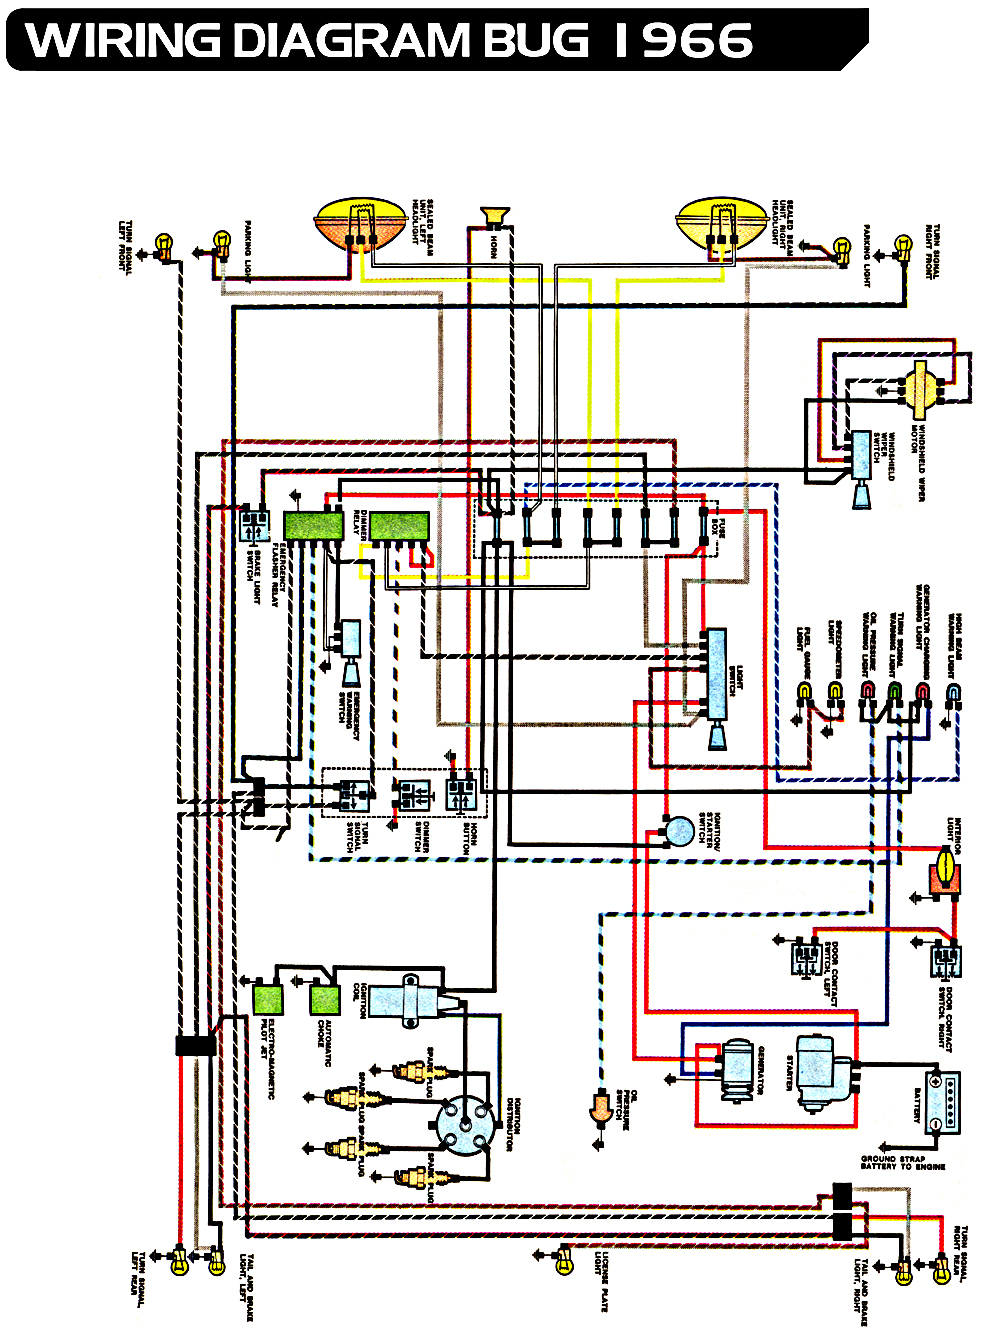 vw super beetle wiring harness - ford 302 distributor wiring for wiring  diagram schematics  wiring diagram schematics